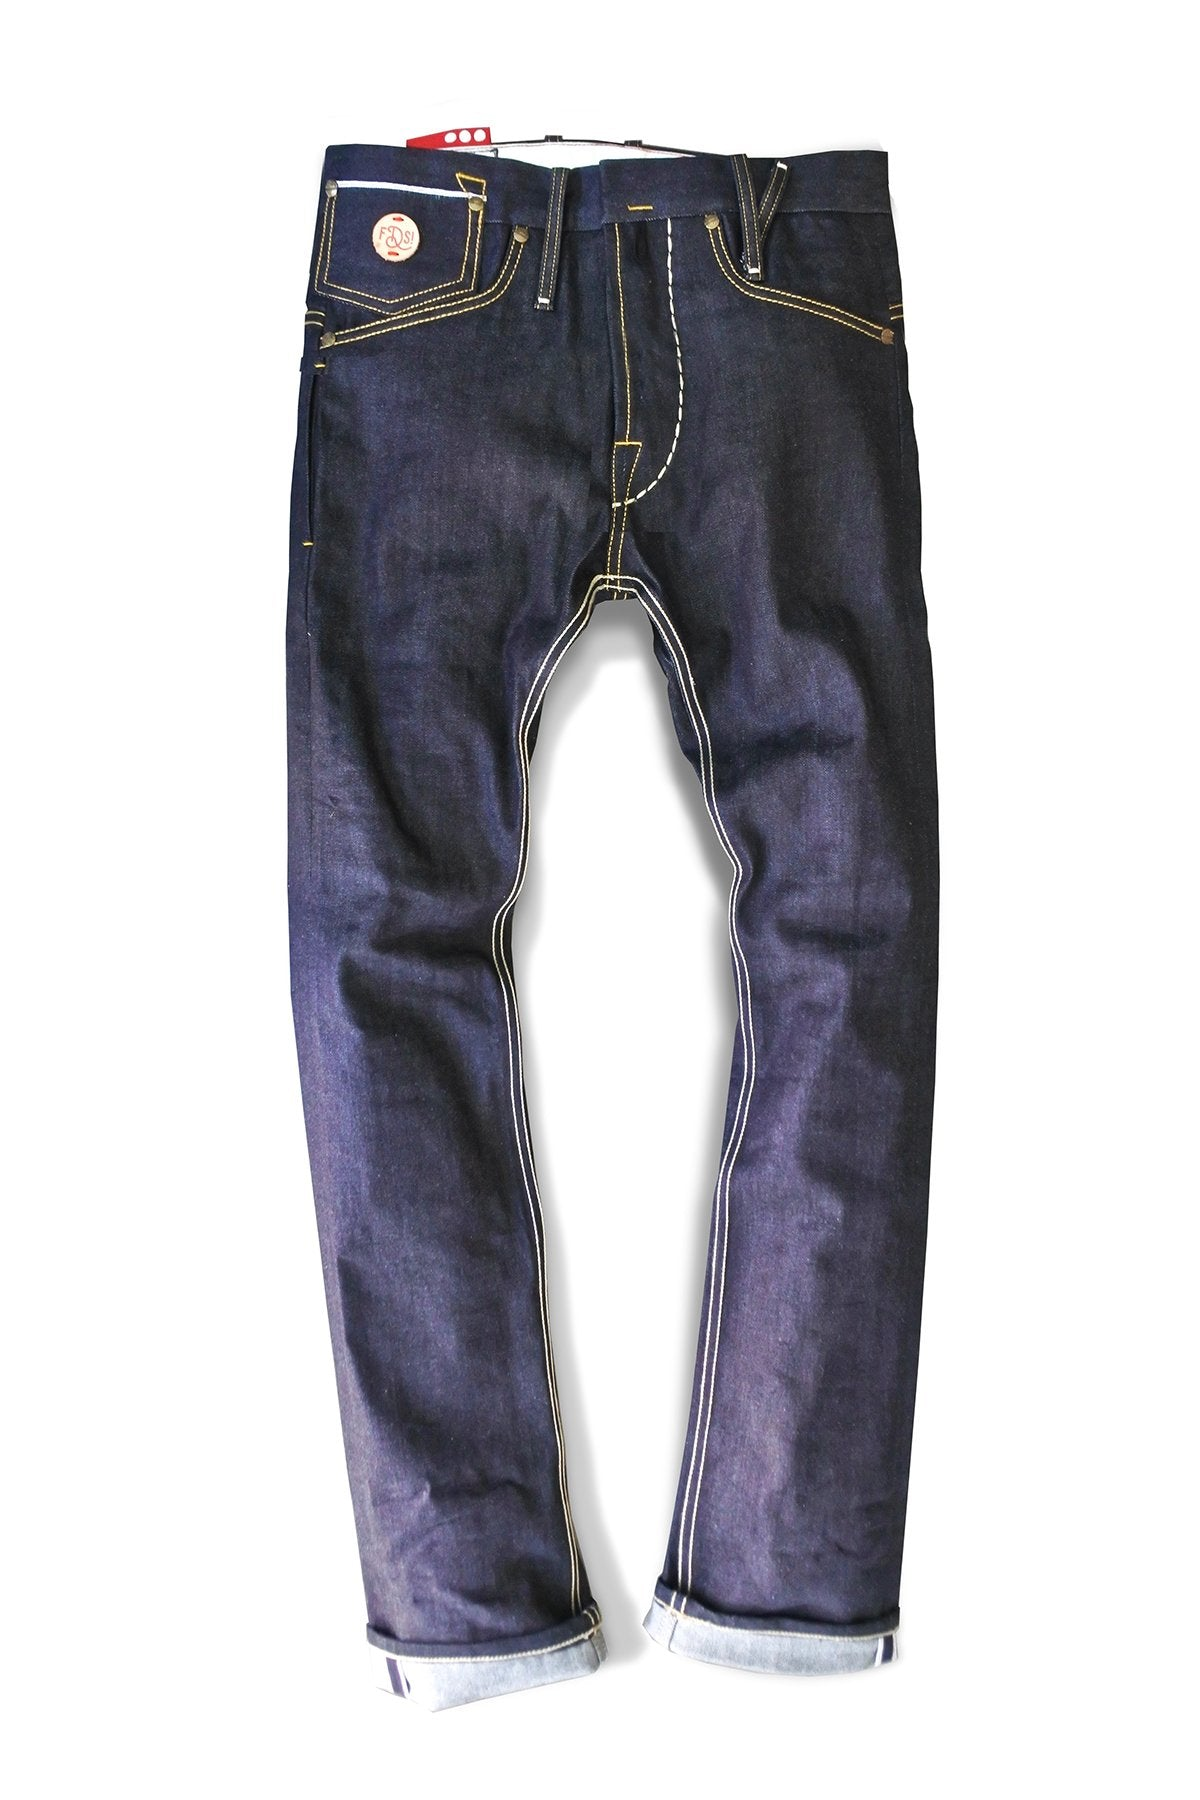 Brando Jeans / Blue Magic